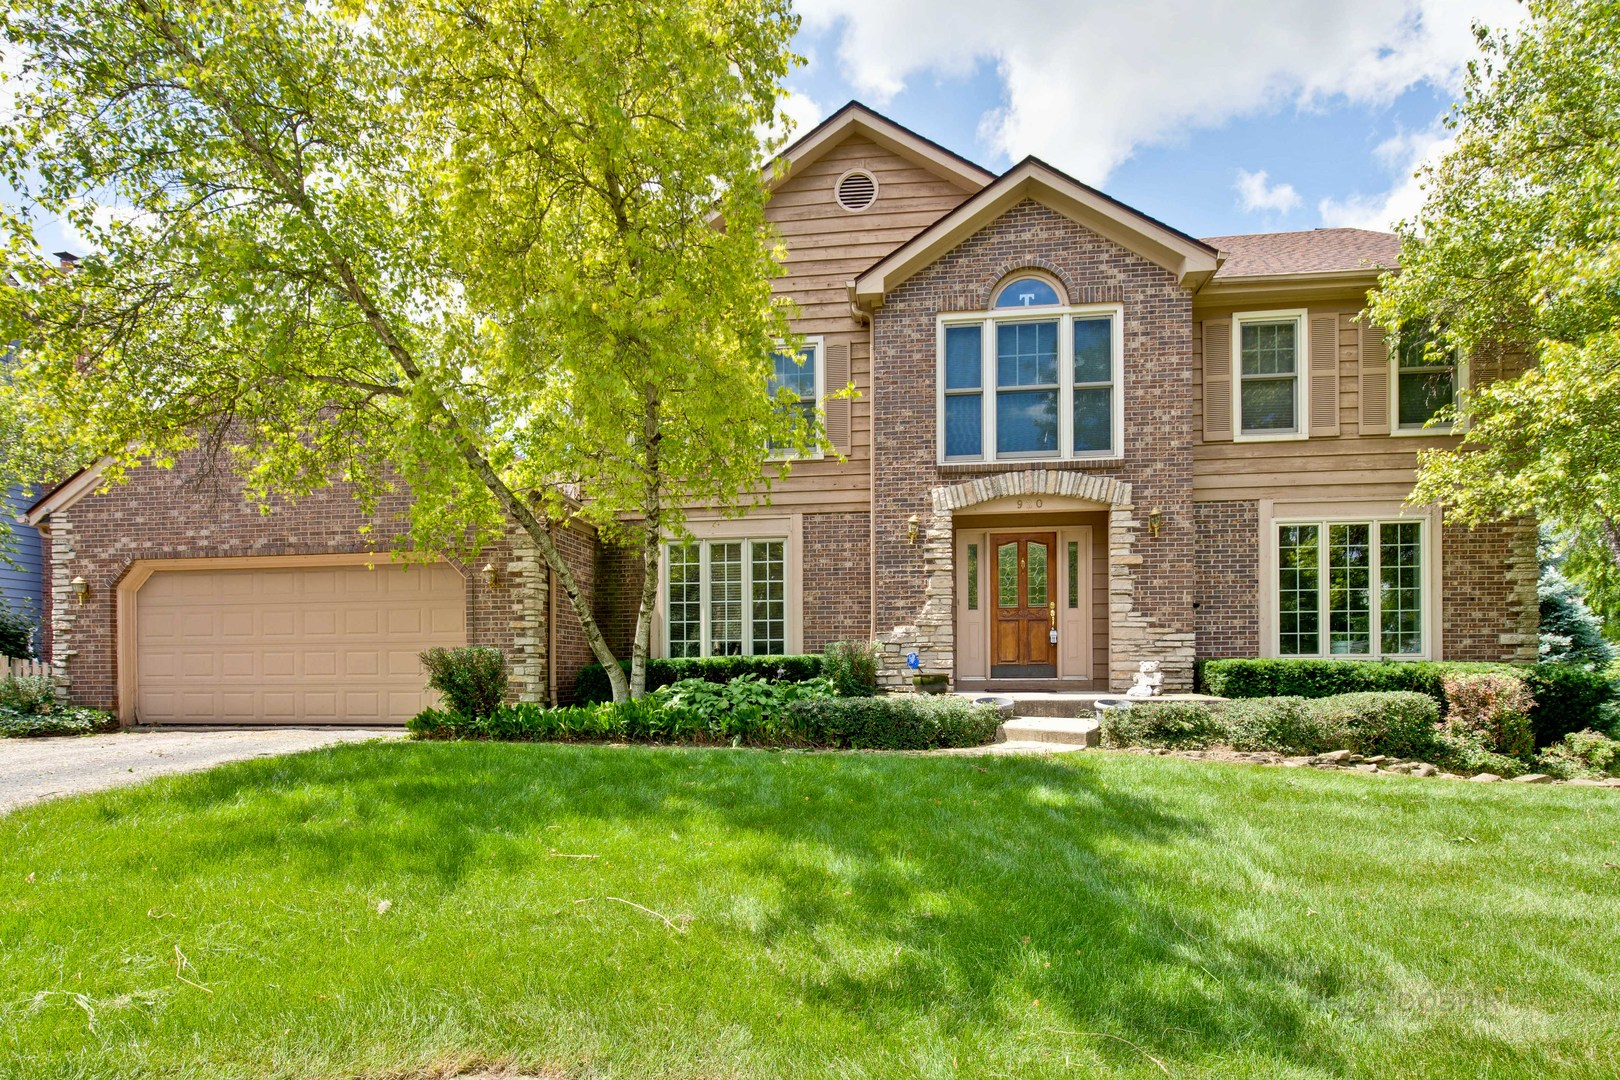 Photo for 920 Crabtree Lane, Cary, IL 60013 (MLS # 10544345)